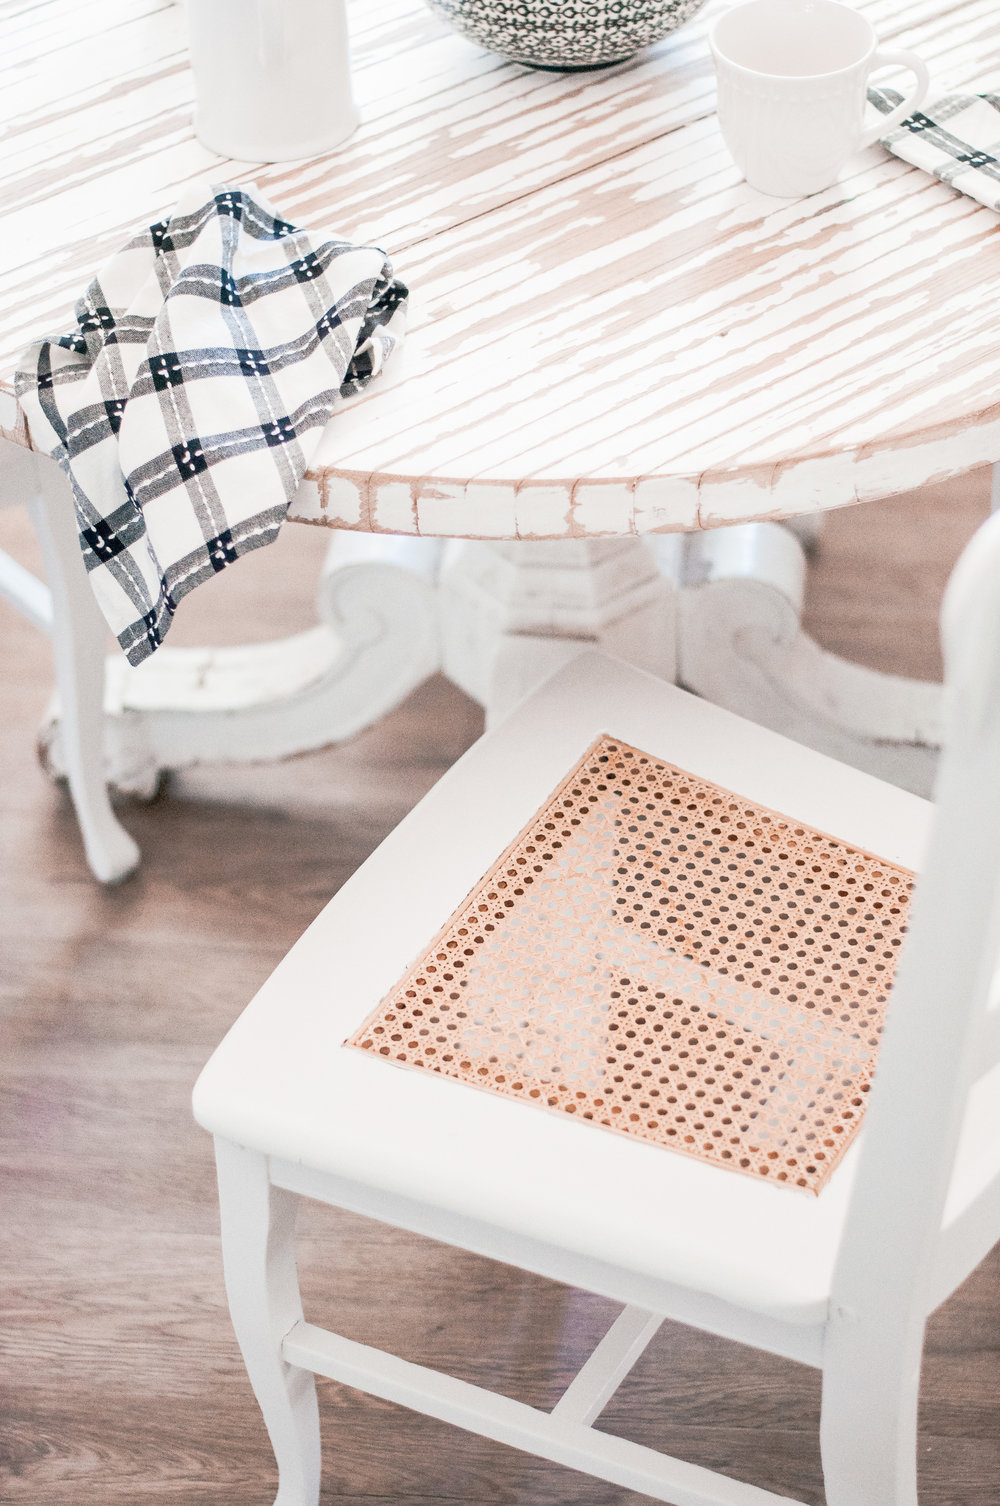 DIY White Dining Chair